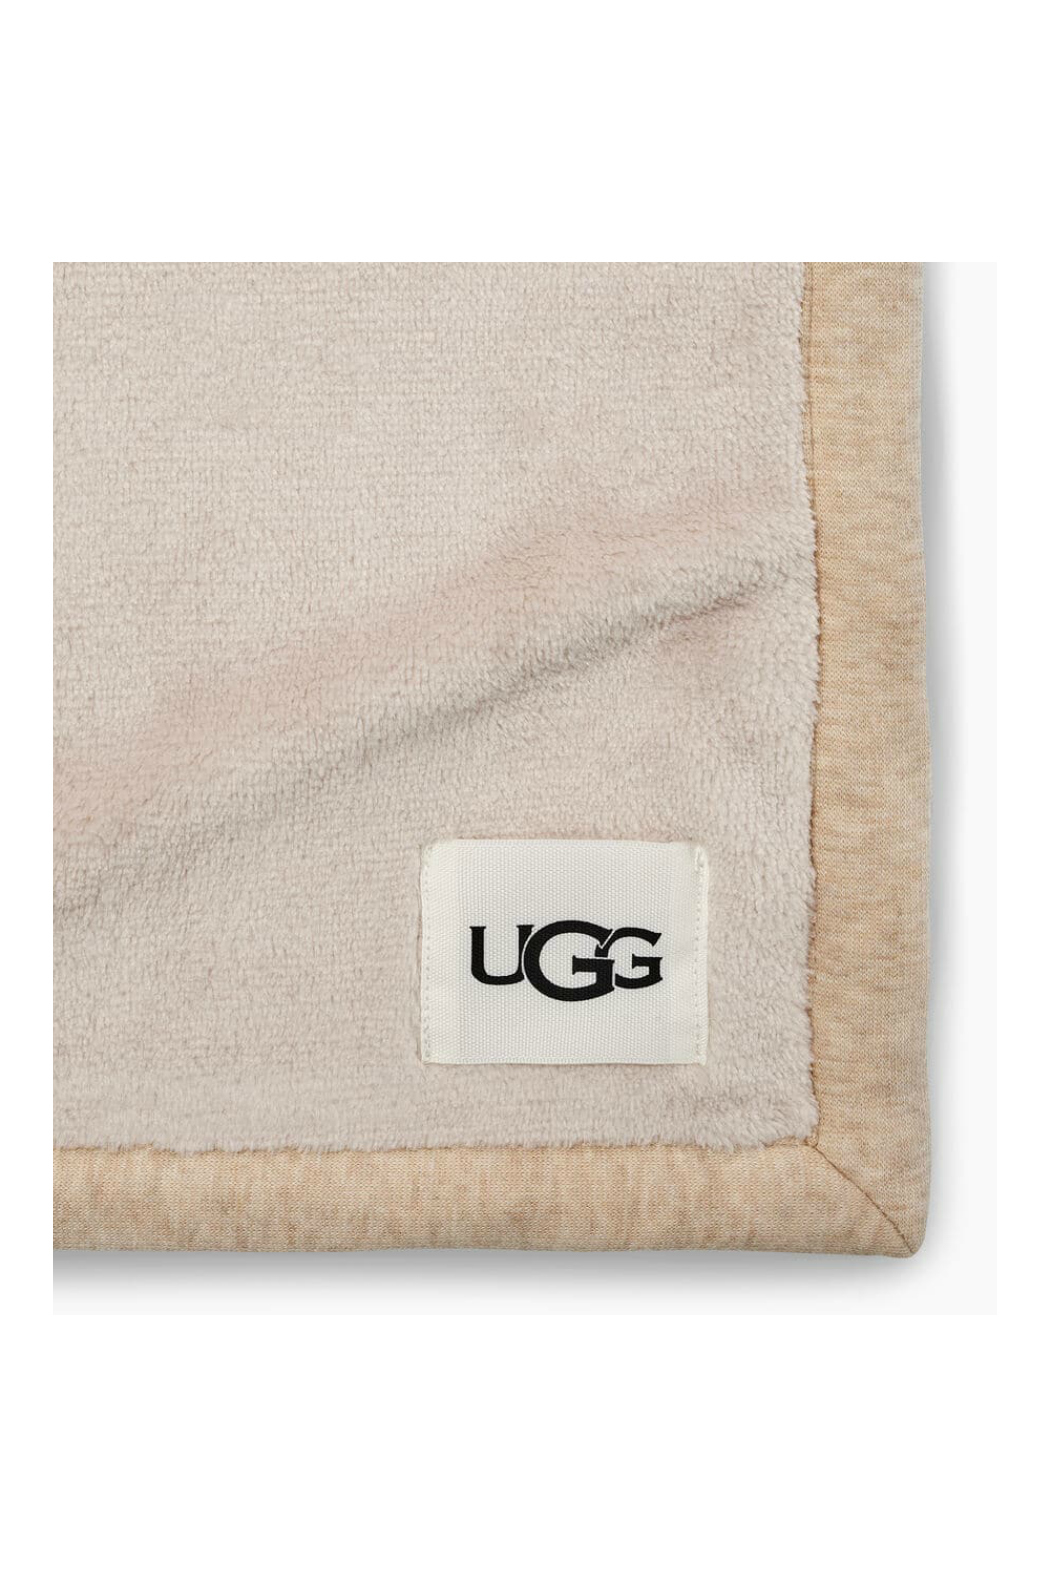 Ugg DUFFIELD THROW II - Side Cropped Image